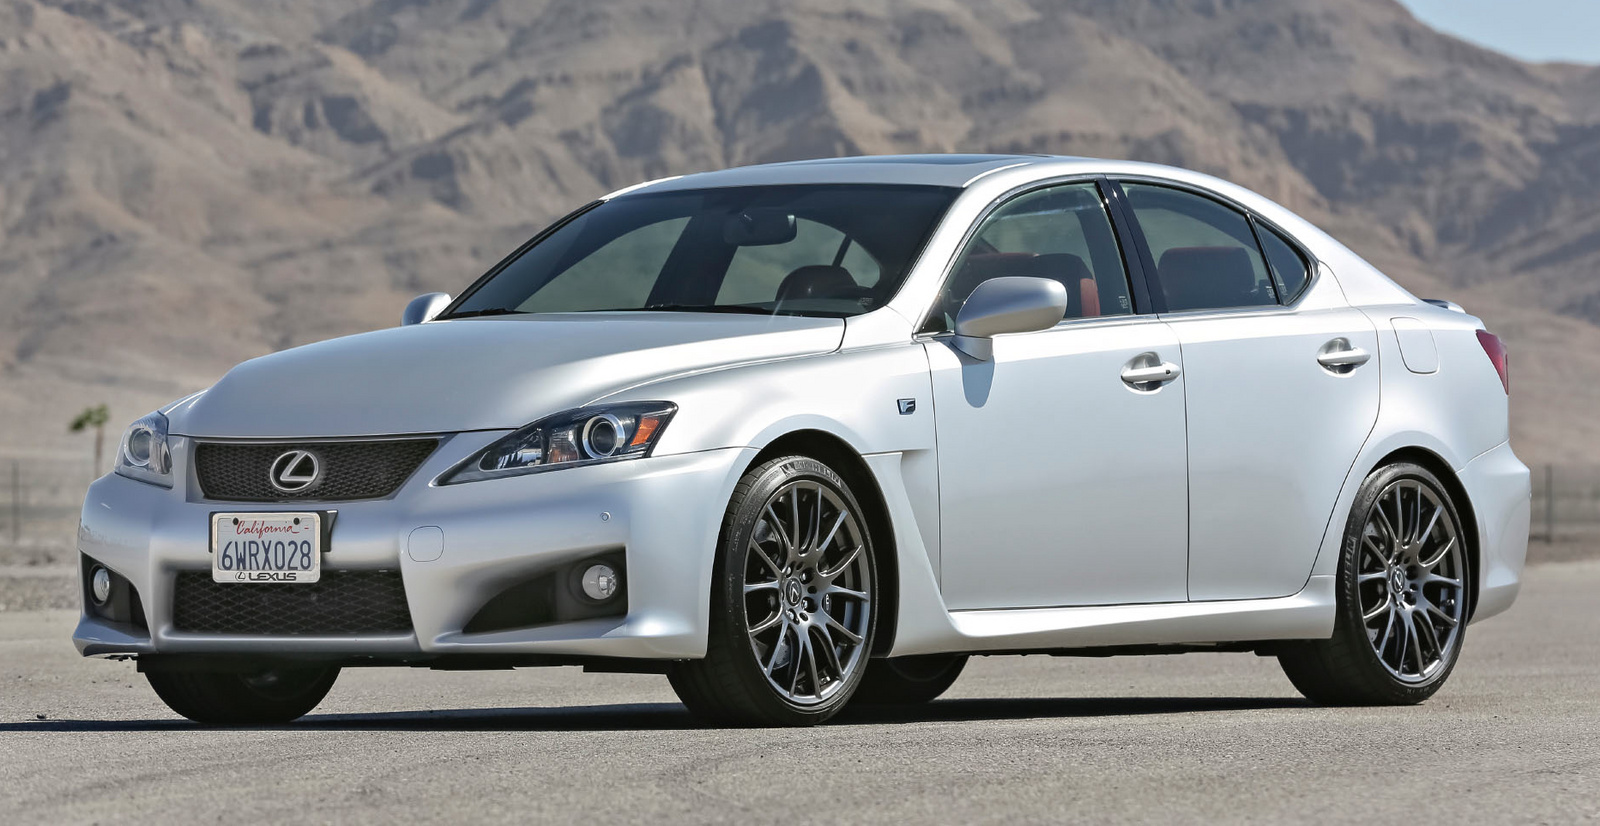 2014 lexus isf specs - photo #25